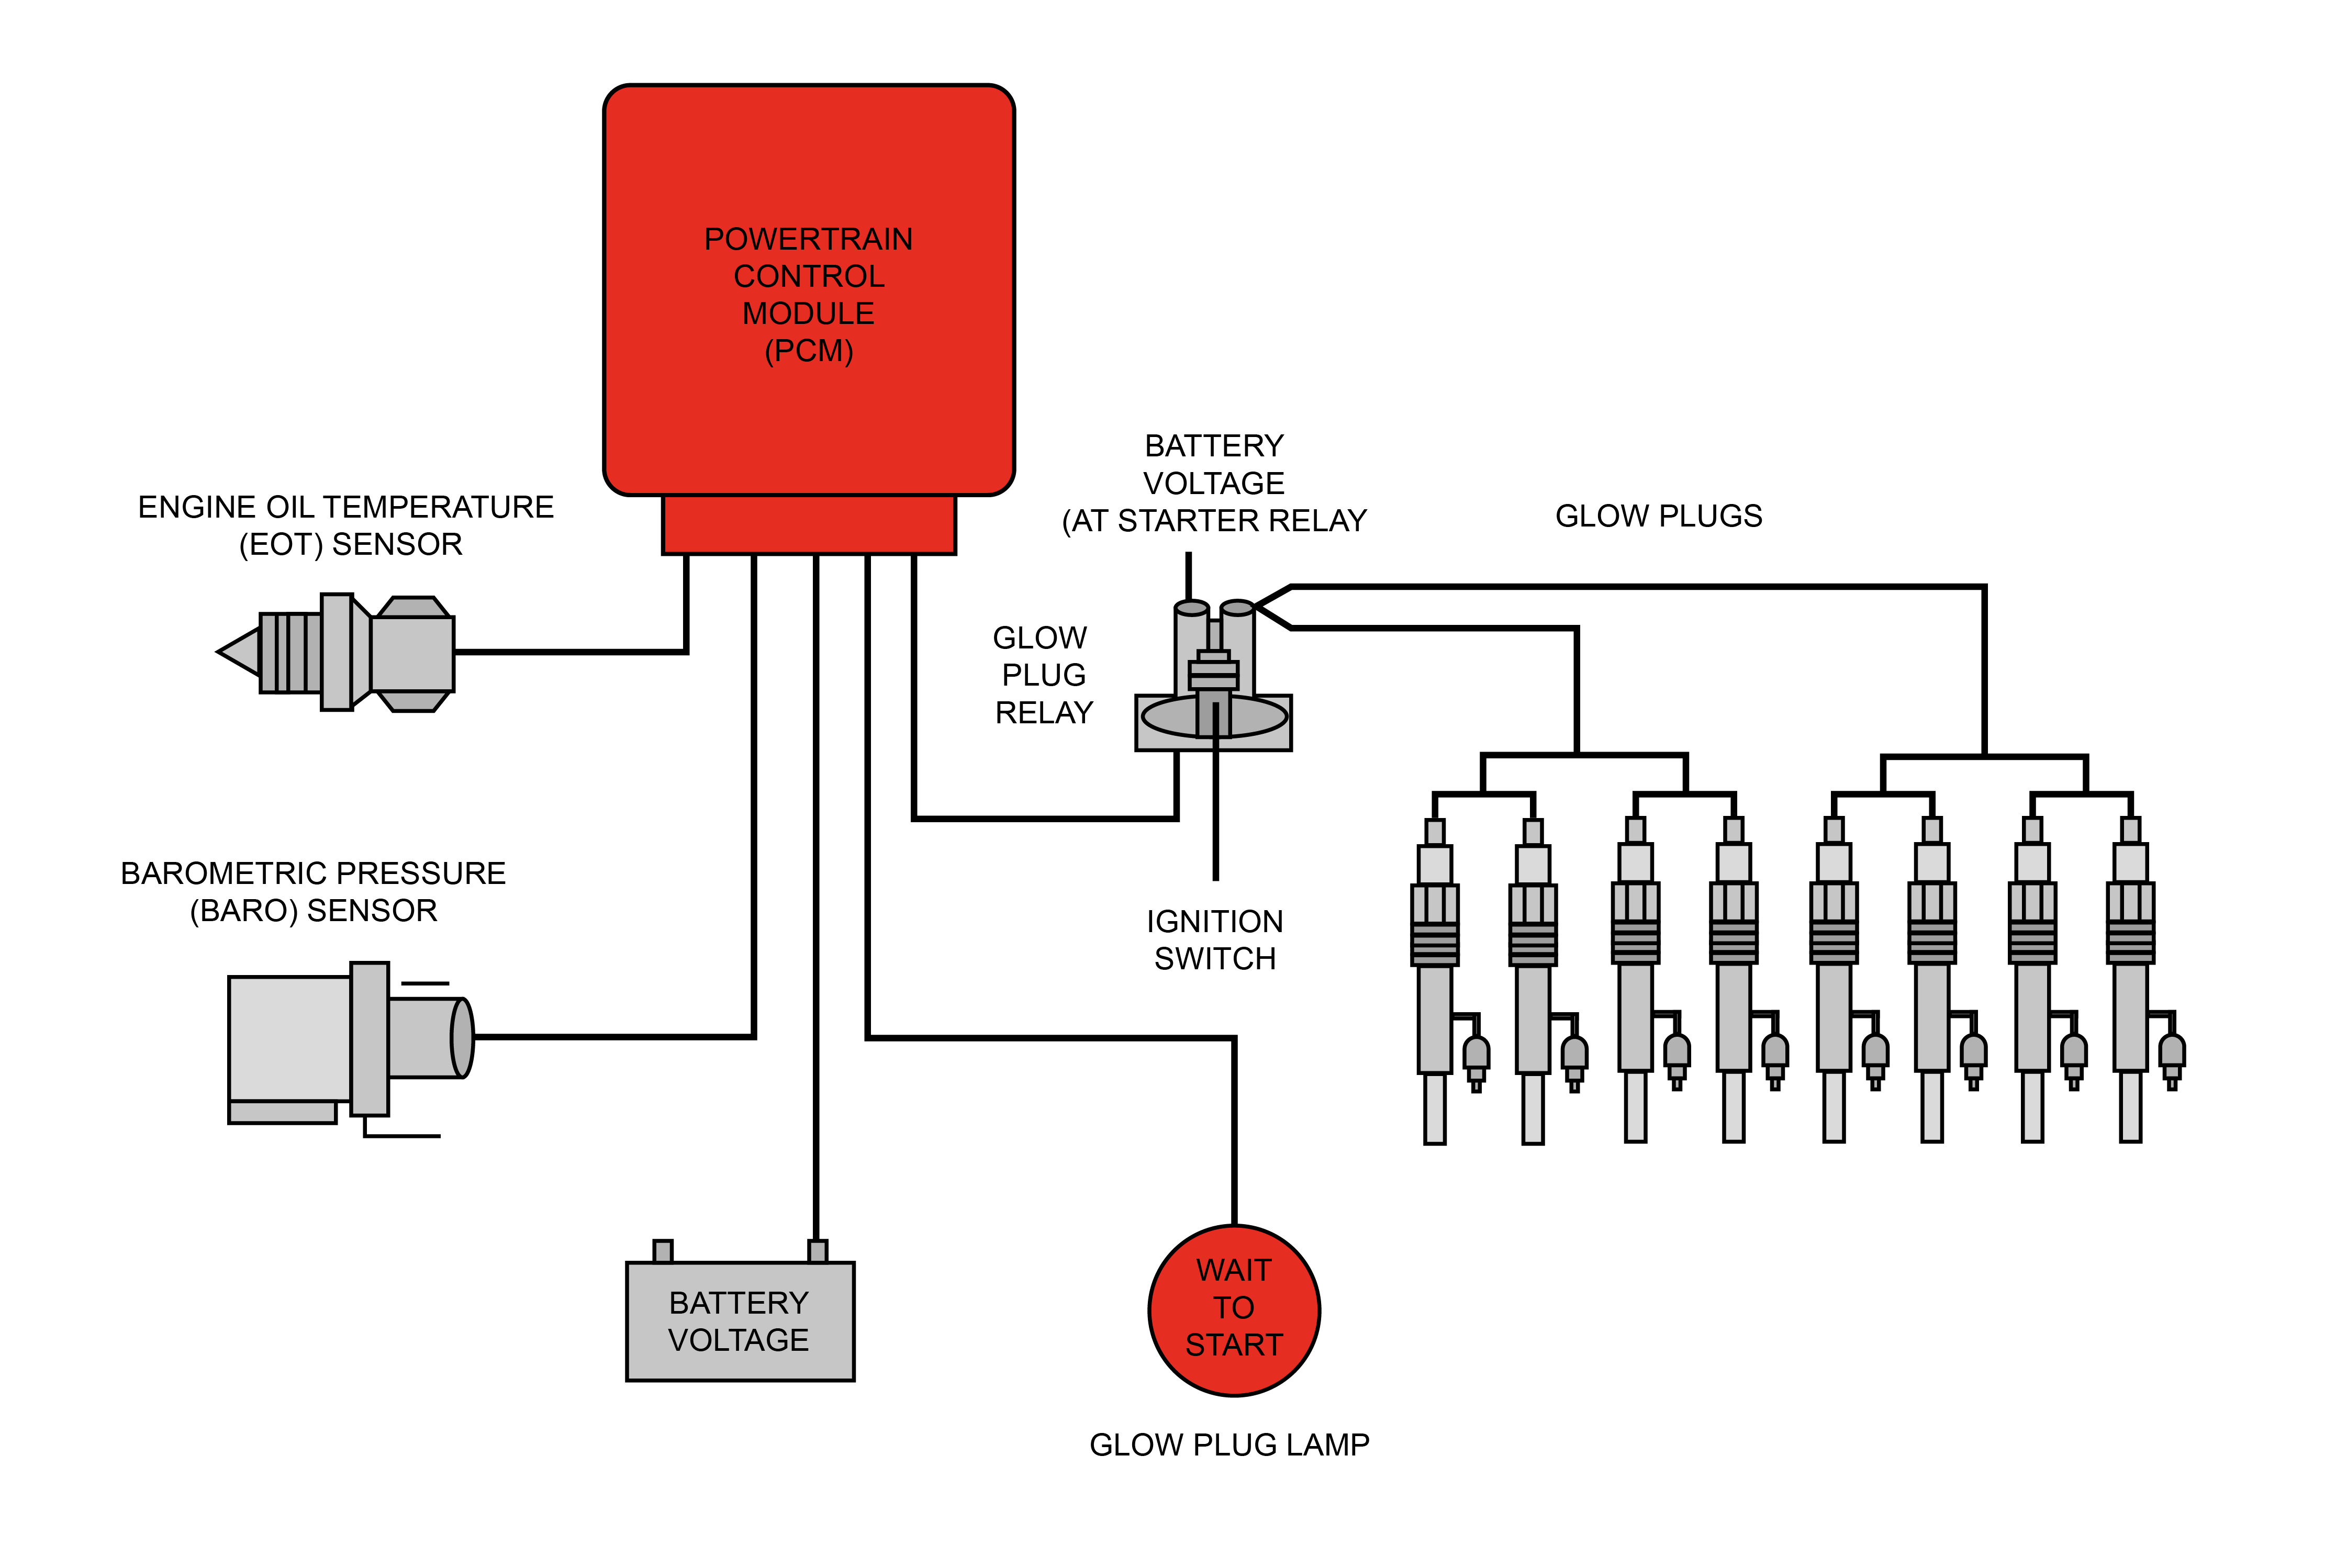 7.3 Idi Glow Plug Controller Wiring Diagram from www.championautoparts.co.uk